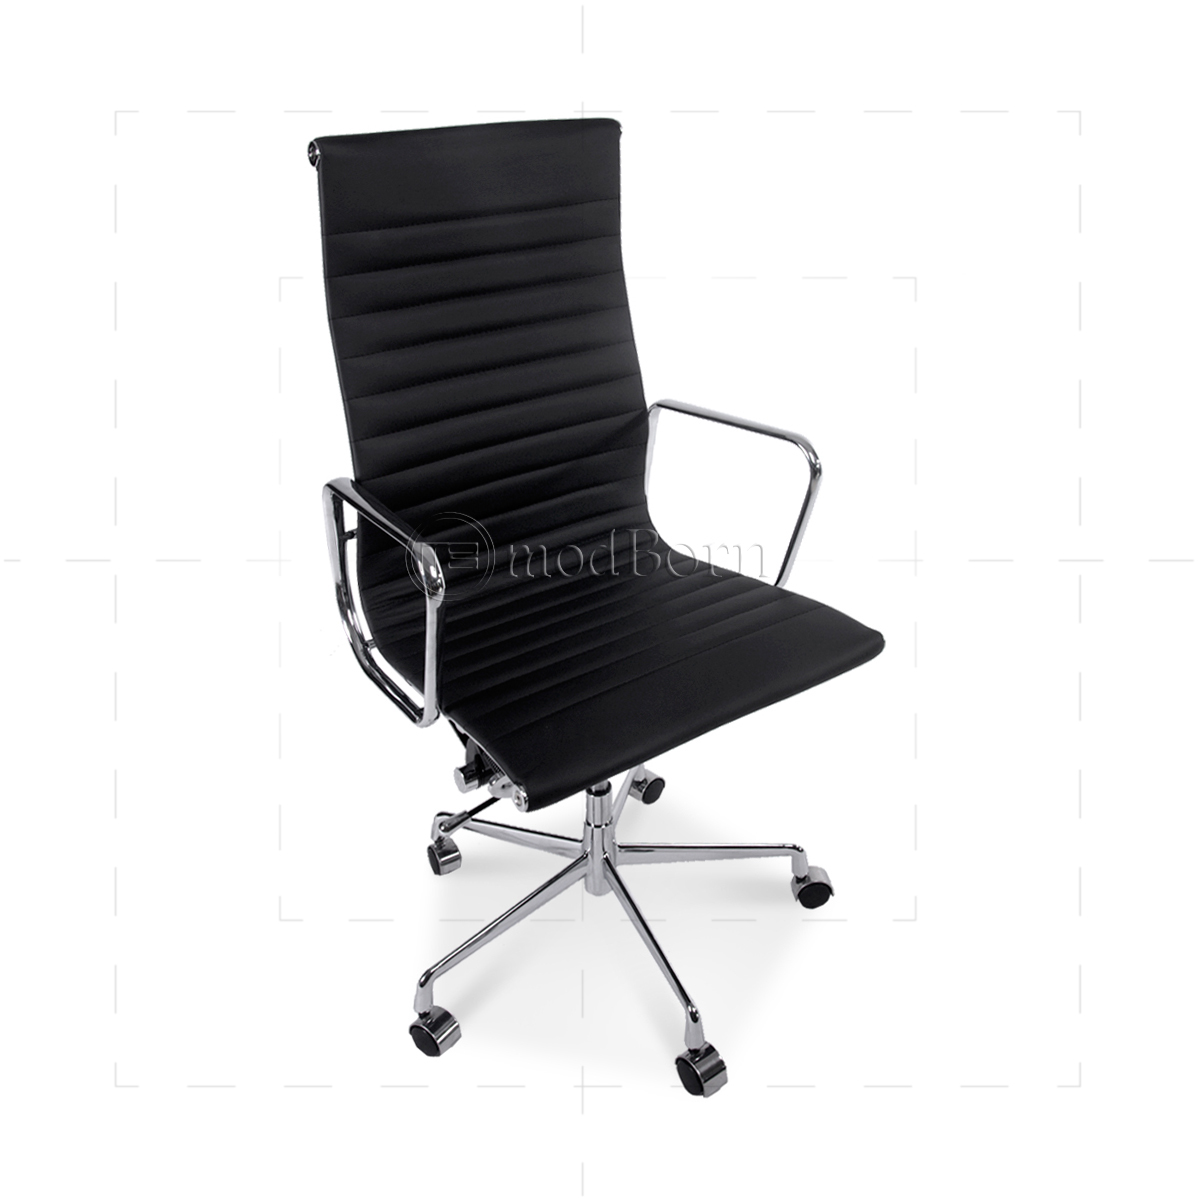 EA119 Eames Style Office Chair High Back Ribbed Black Leather : eames office chair highback black front 1200x1200 Eames Office Chair from www.modborn.com size 1200 x 1200 jpeg 295kB